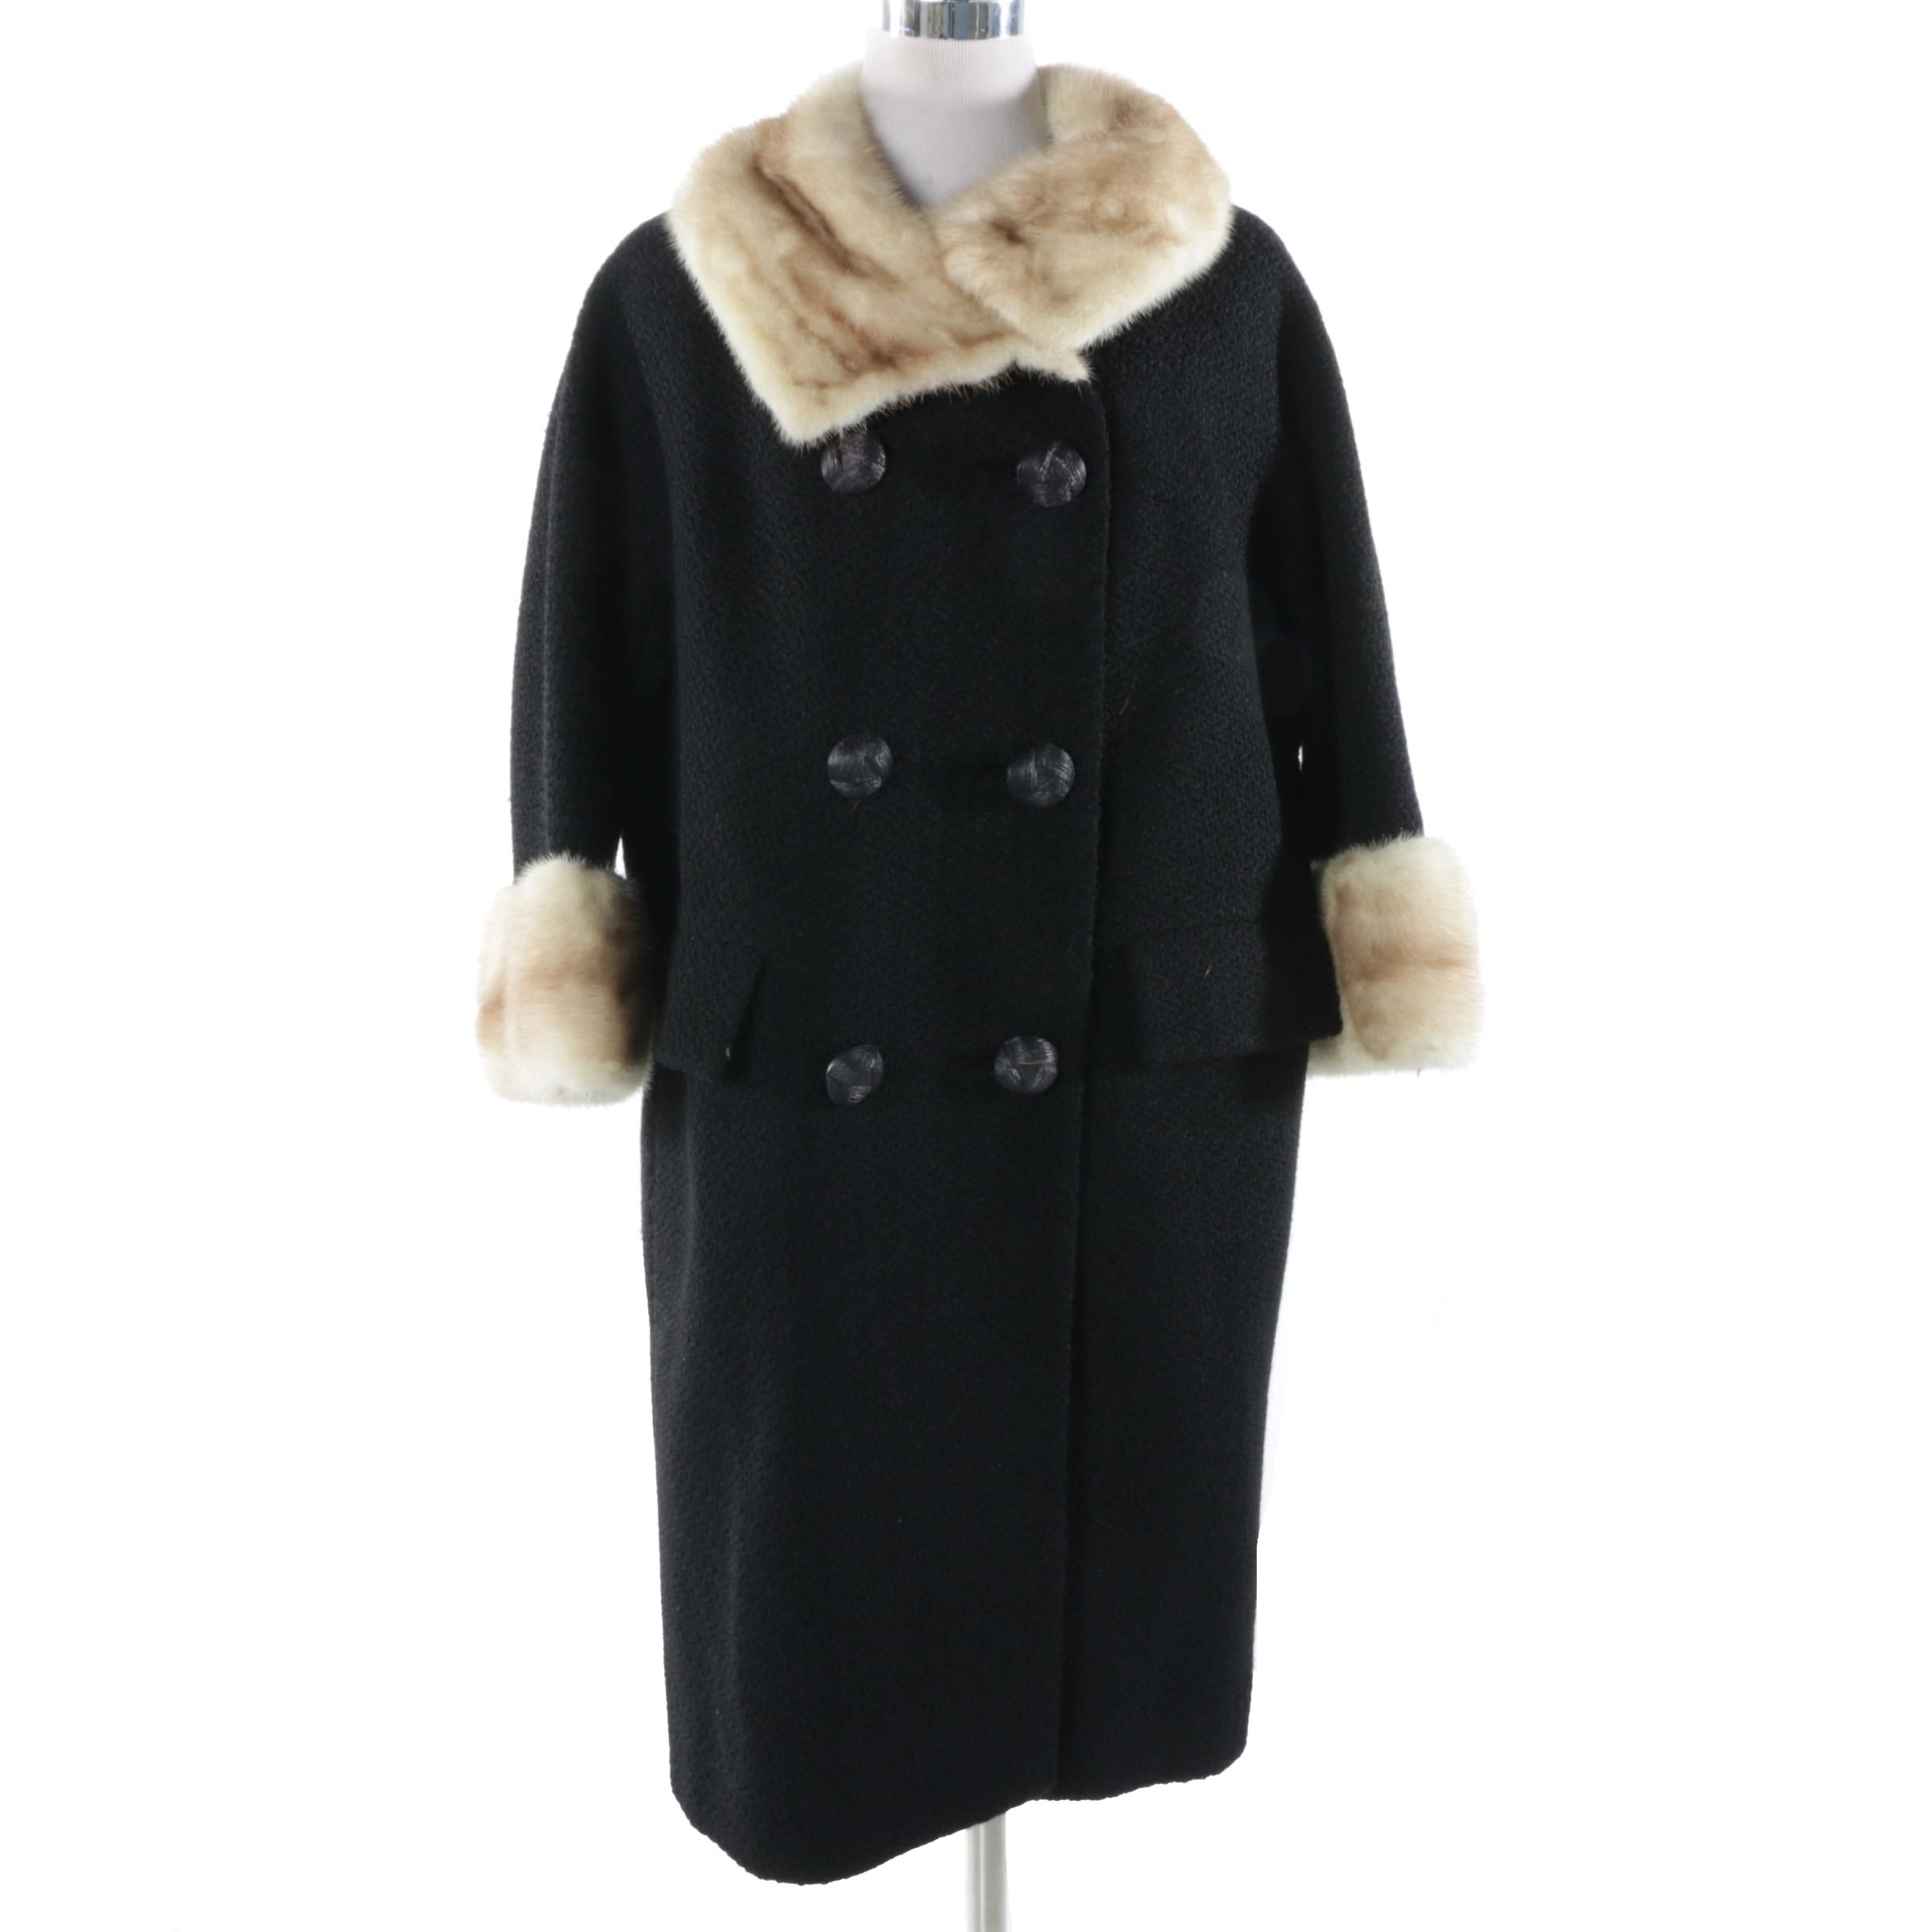 Vintage Boucle Coat with Mink Collar and Cuffs